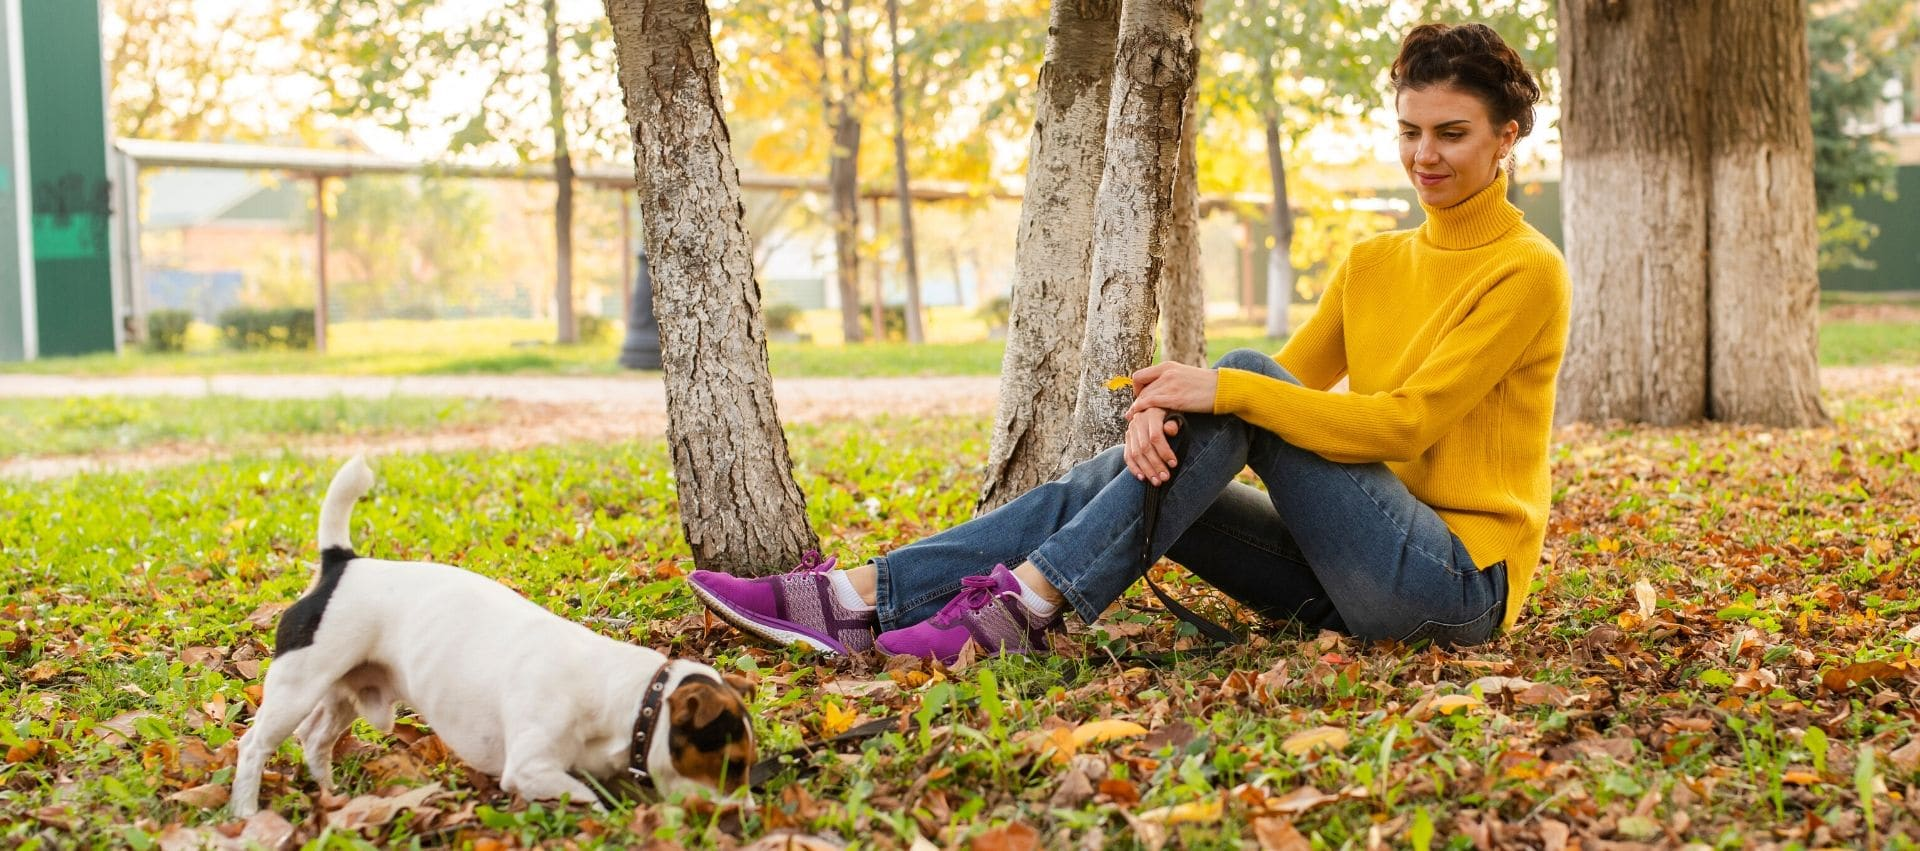 White dog playing in park with lady in gold turtleneck